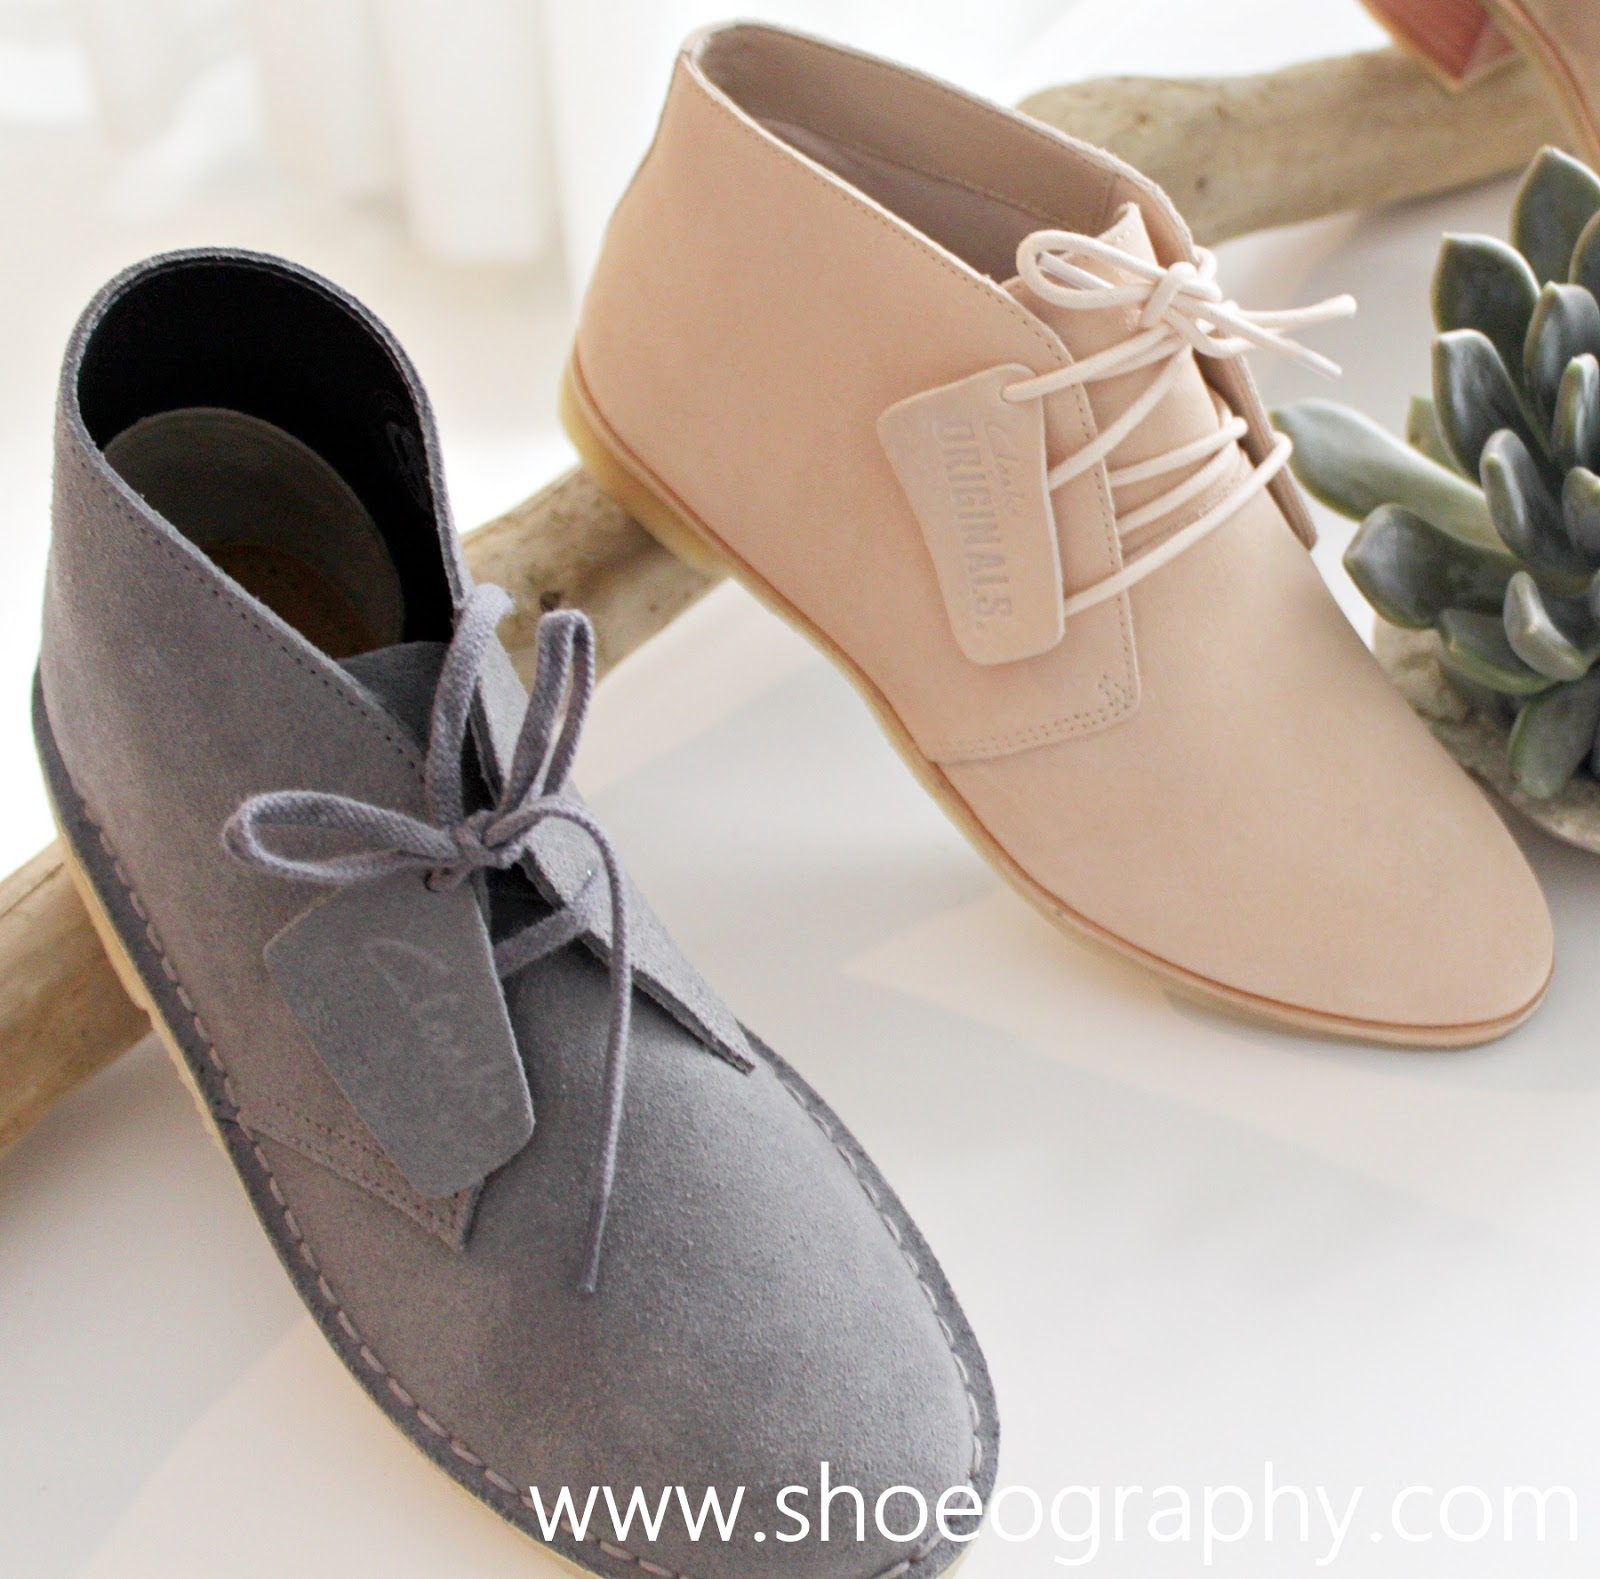 33cb8450b79 Clarks Spring Summer 2016 Collection